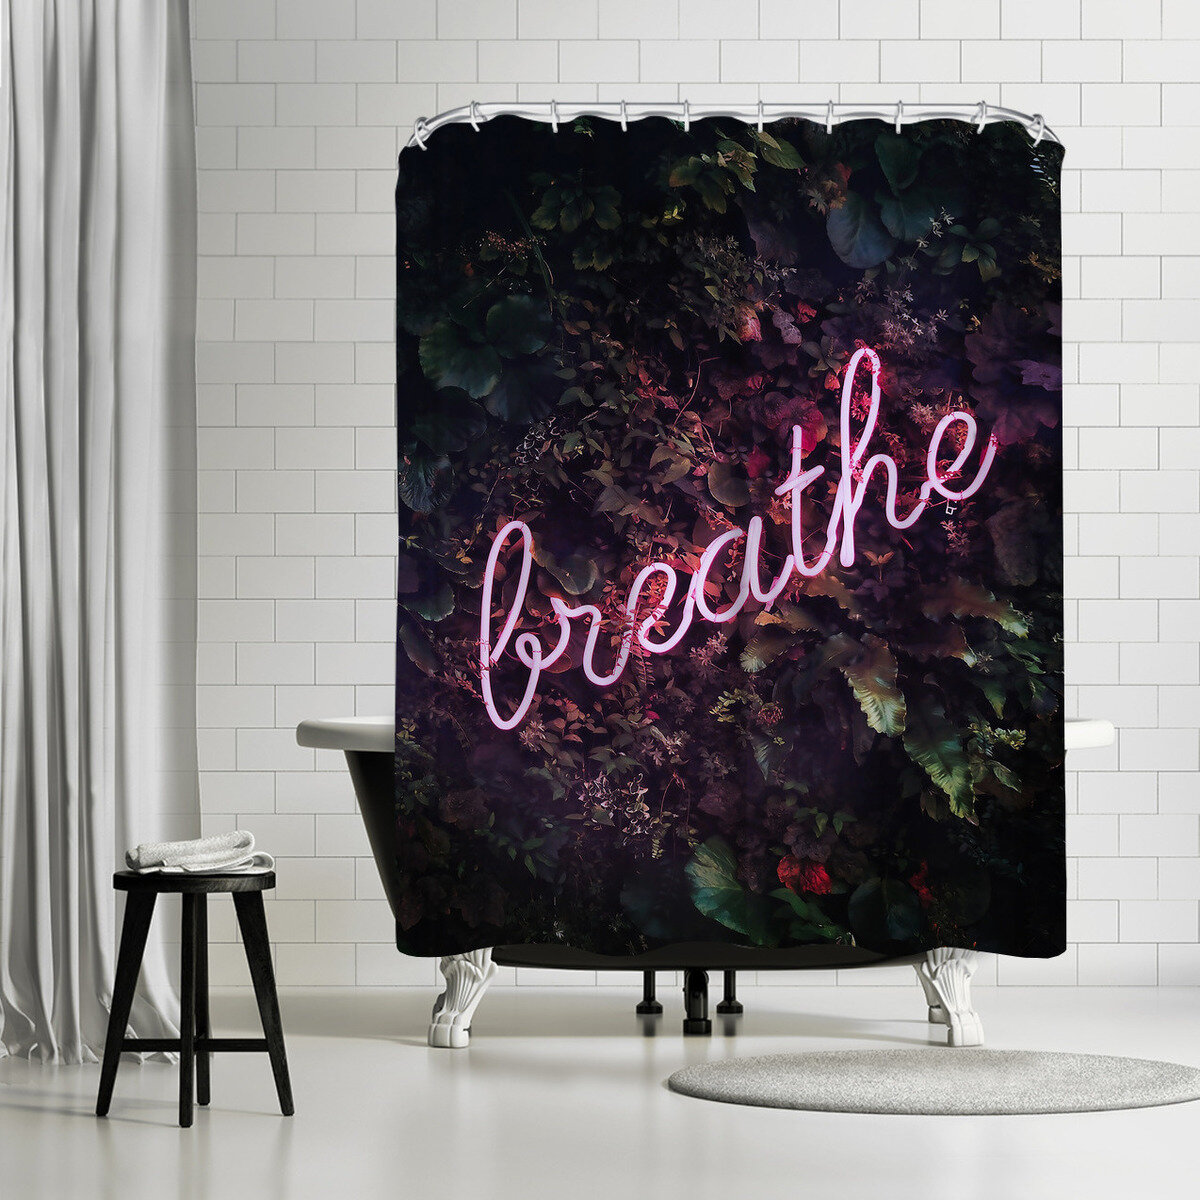 East Urban Home Sisi And Seb Breathe Single Shower Curtain Wayfair